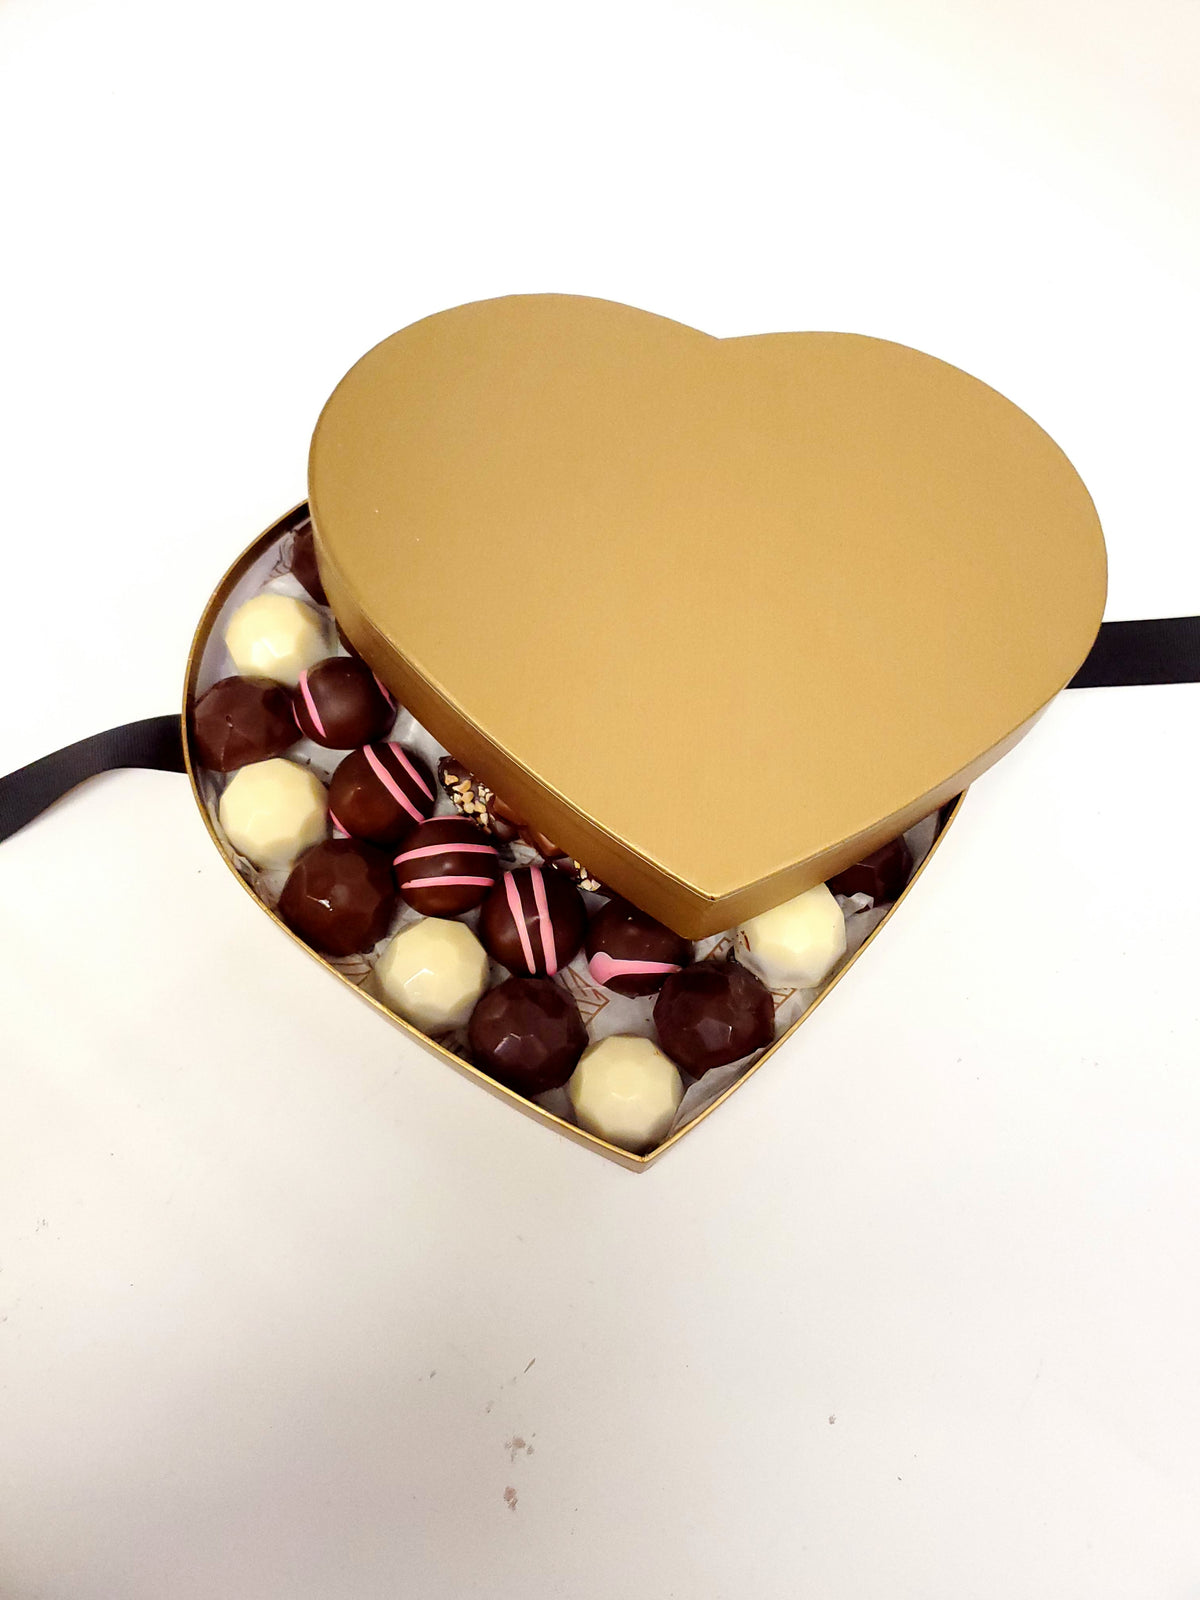 Gold Heart Chocolate Box Gift Love